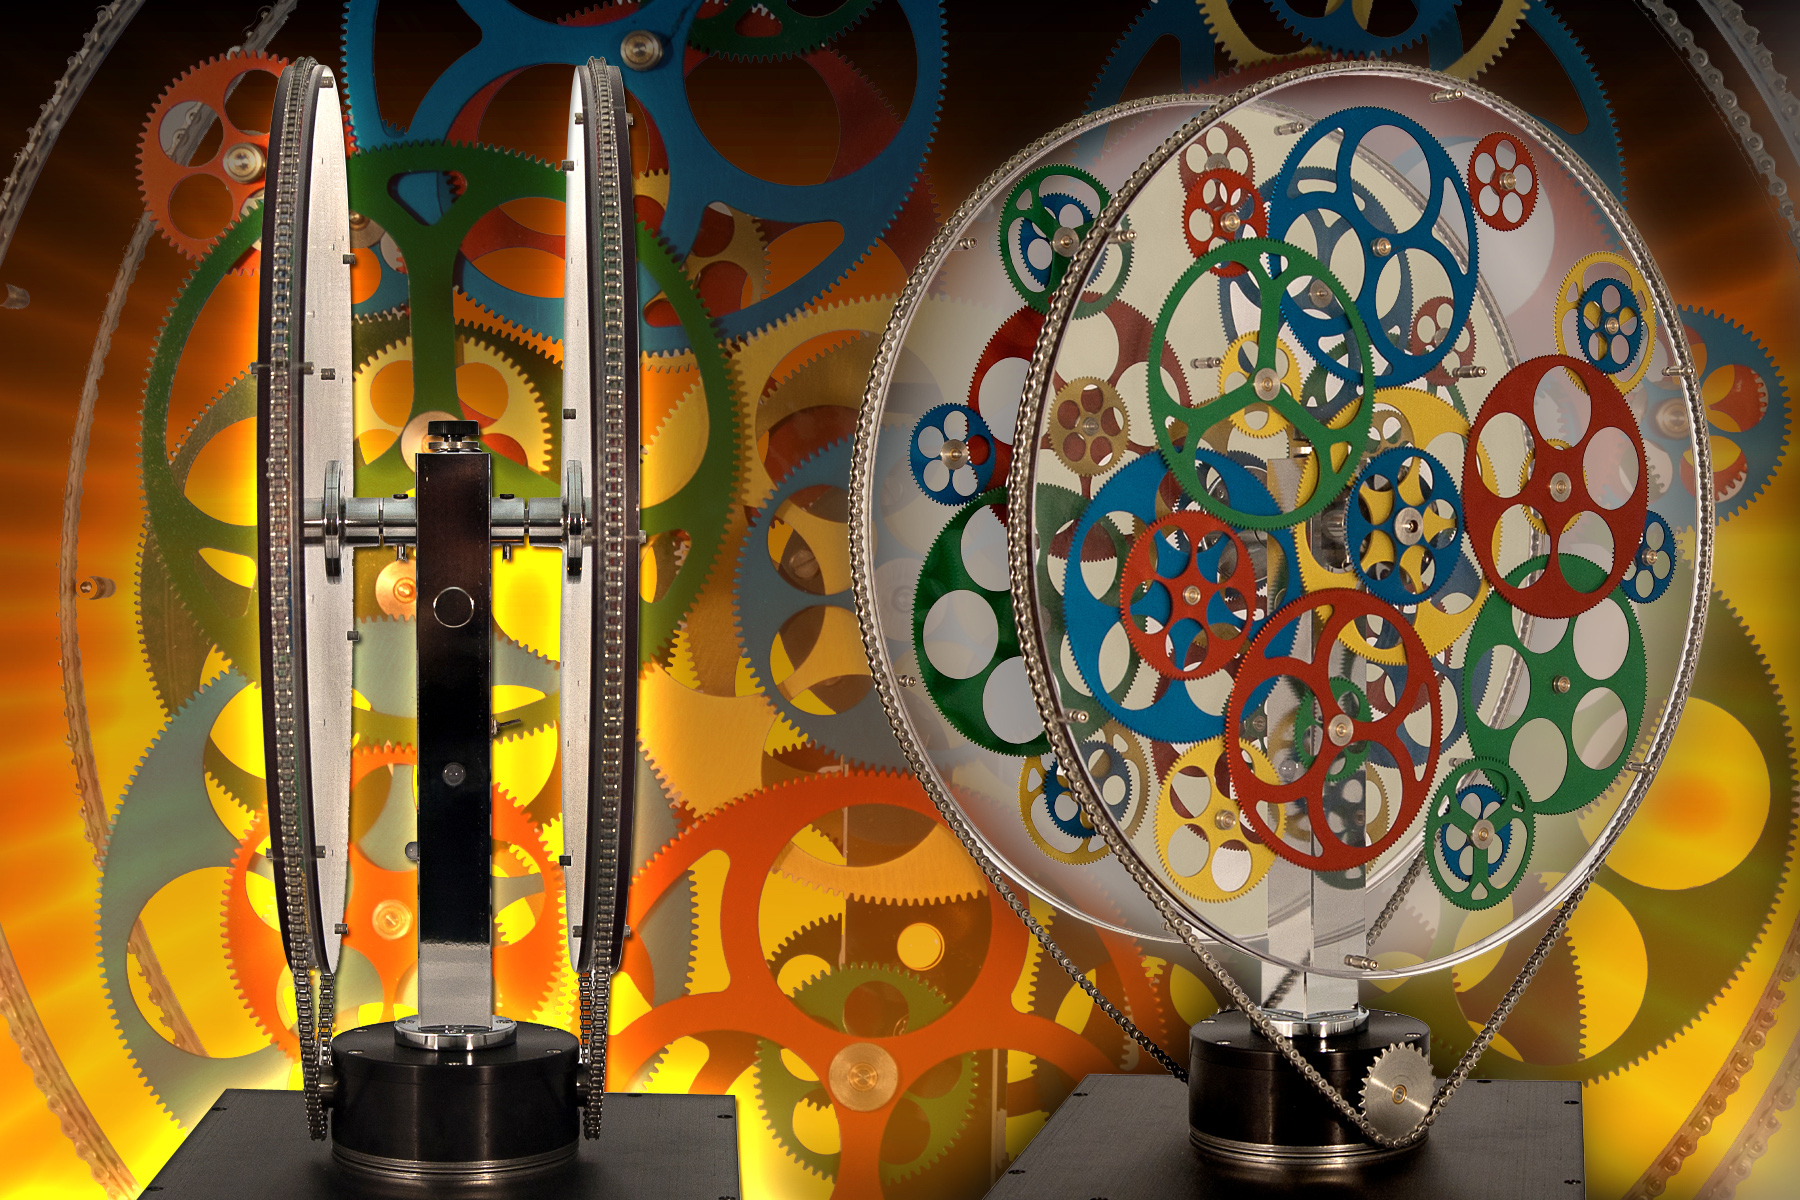 kinetic gear sculpture illustrates